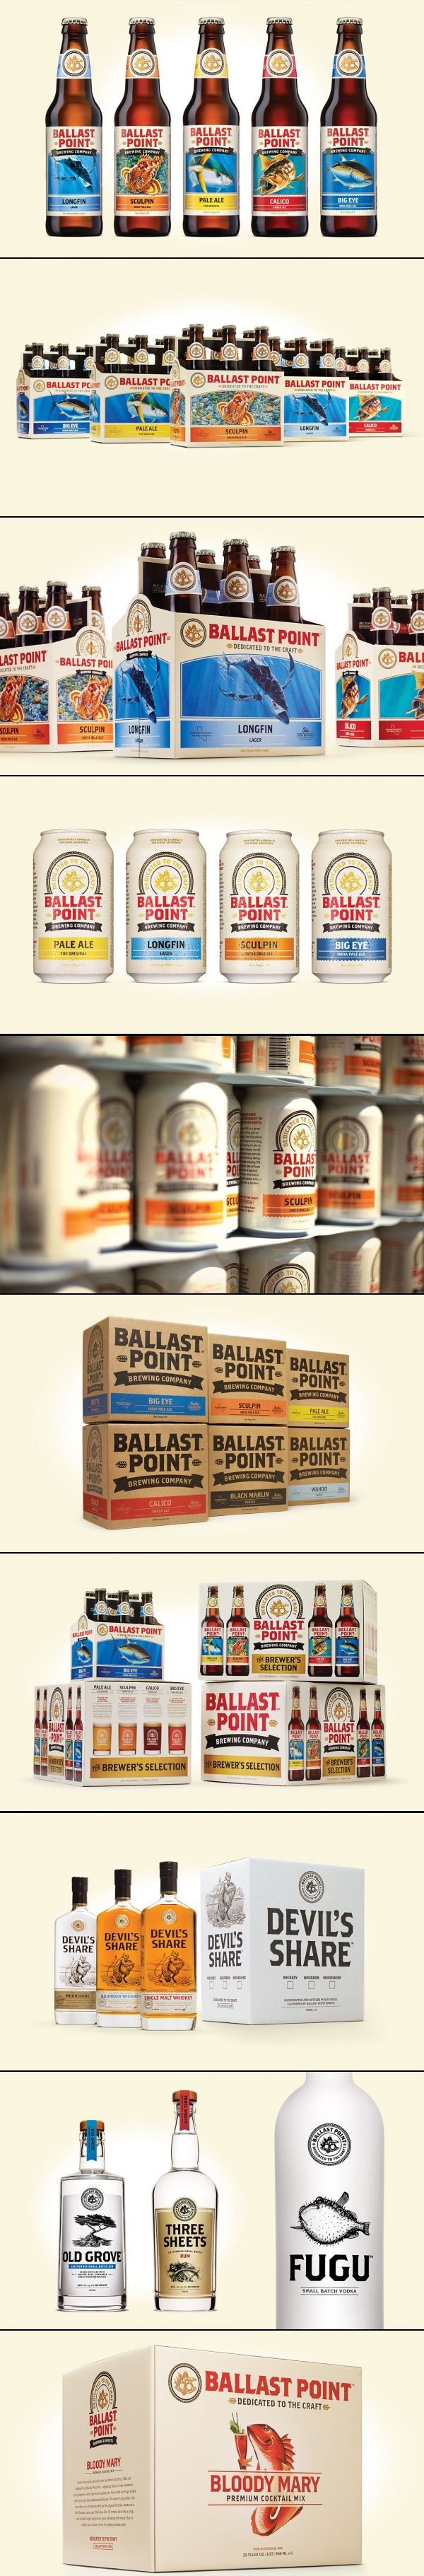 Ballast Point /MiresBall